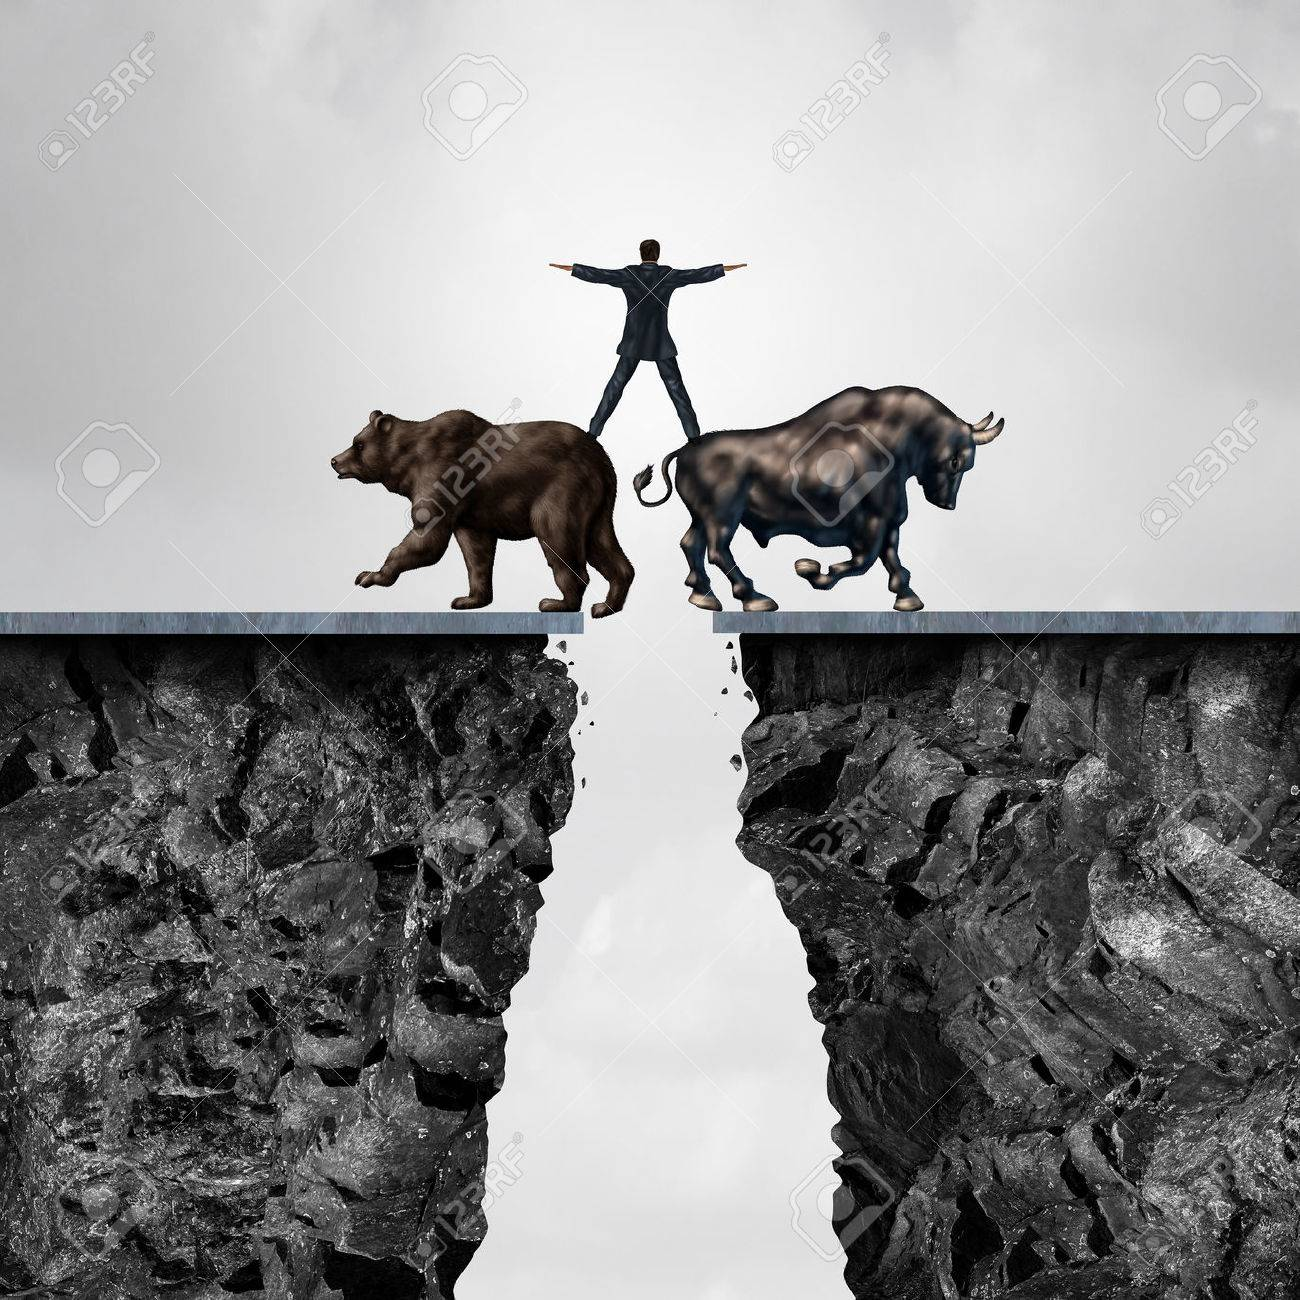 Concept of investment risk as a businessman balancing on top of a bear and bull as a financial metaphor for the danger of managing stock market forces of buying or selling in a 3D illustration style. Stock Photo - 59422676